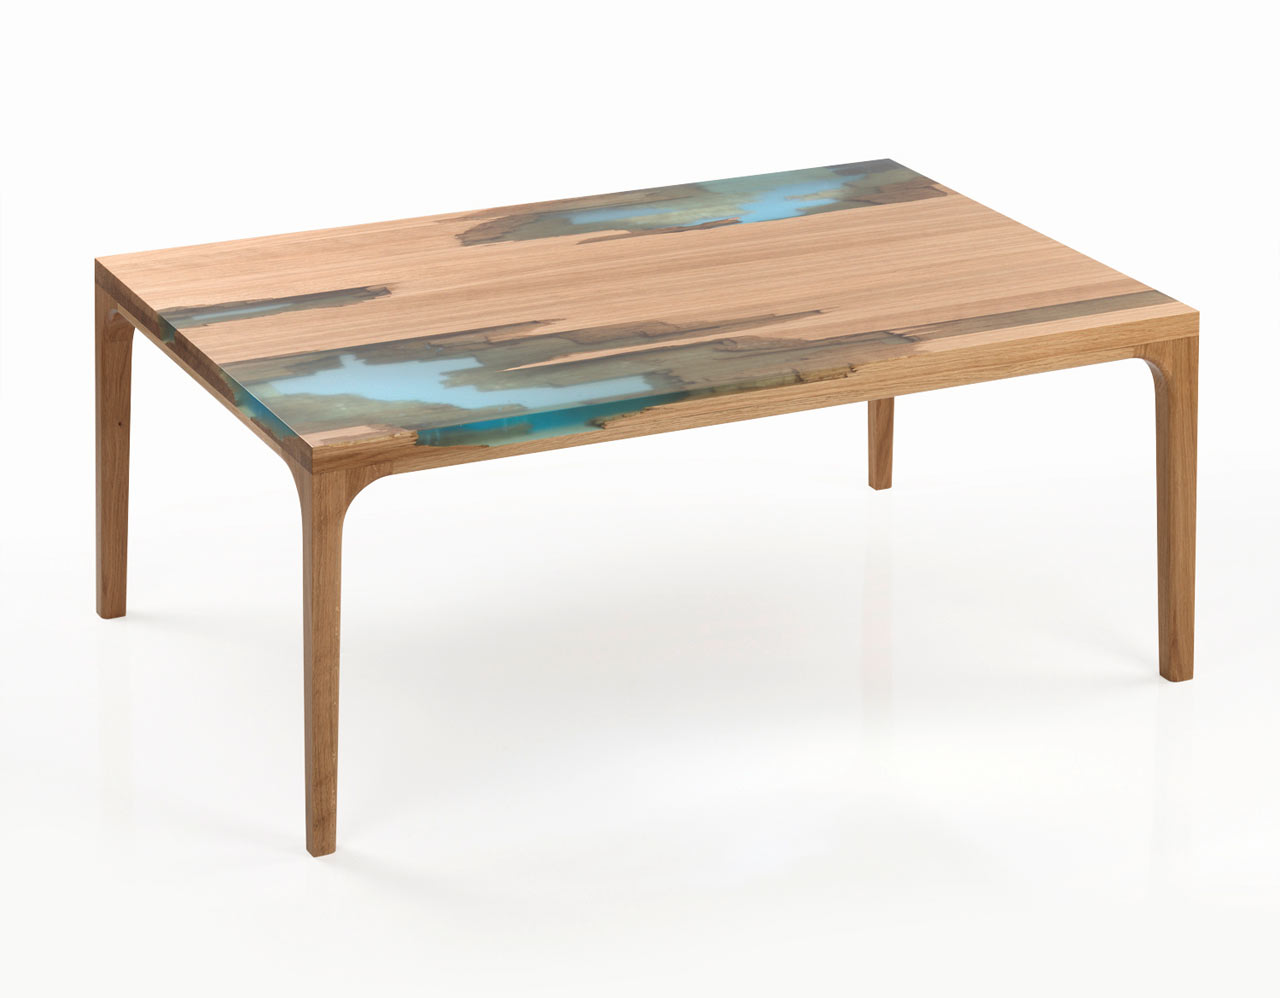 Wood And Resin Furniture Inspired By Self Healing Trees Digsdigs